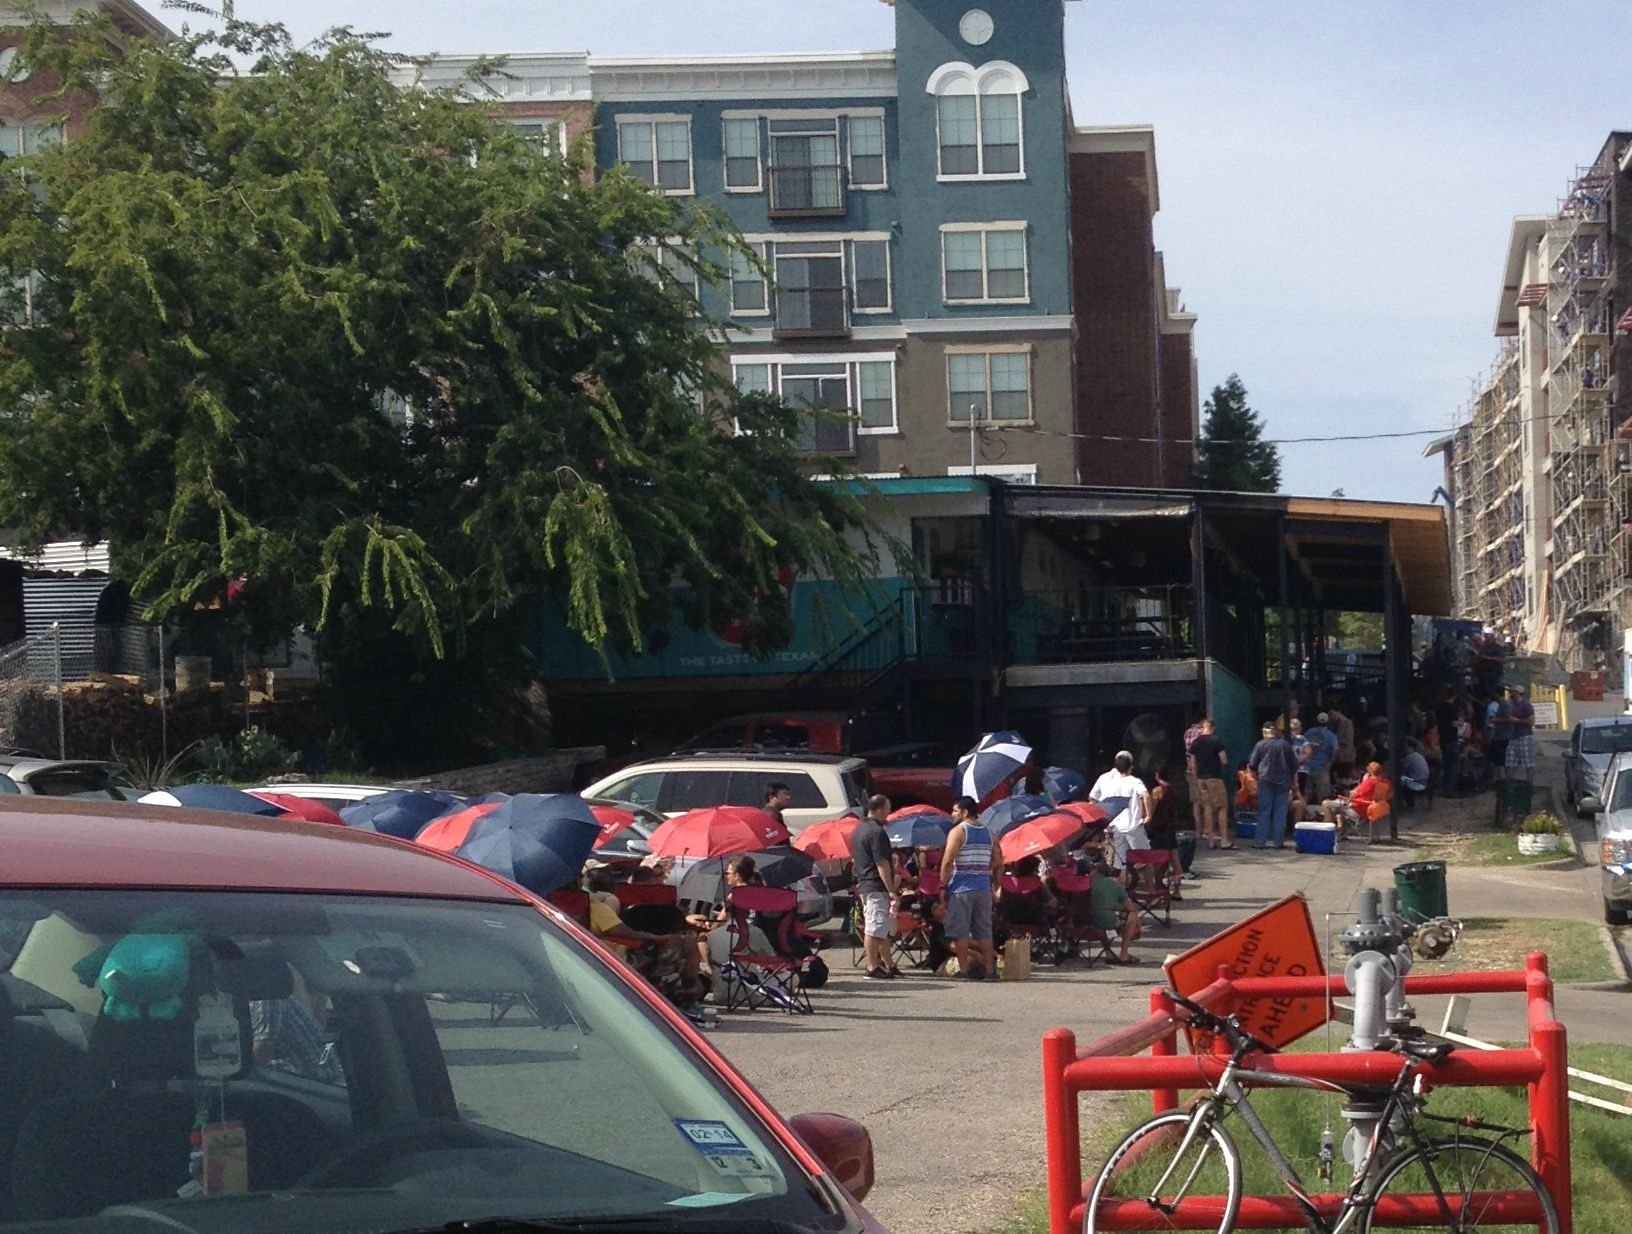 The line at Franklin has turned into quite the social scene, since patrons have to spend many hours together waiting to taste the world-famous smoked meats.